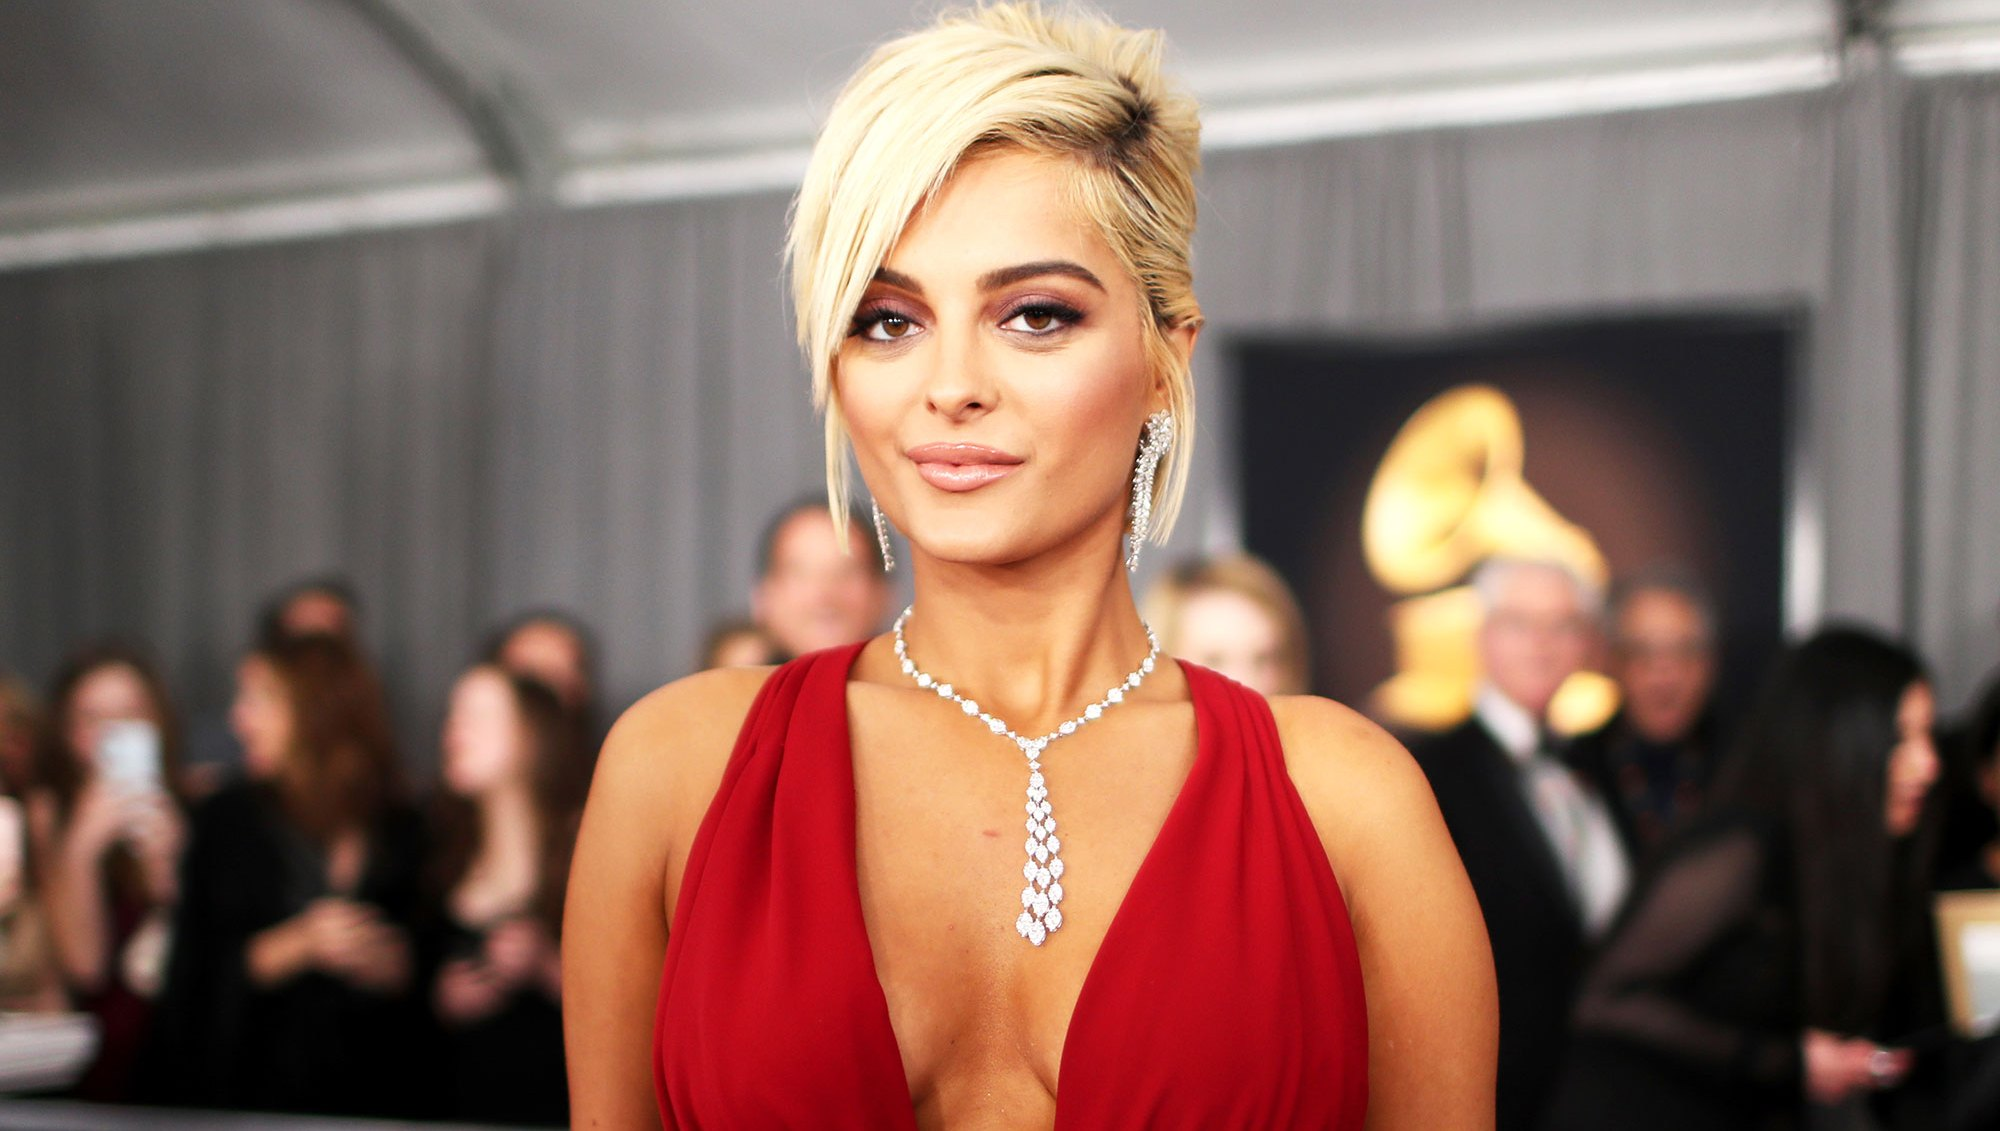 Bebe Rexha and Dad Reconcile After He Called Her Provocative Music Video Embarrassing